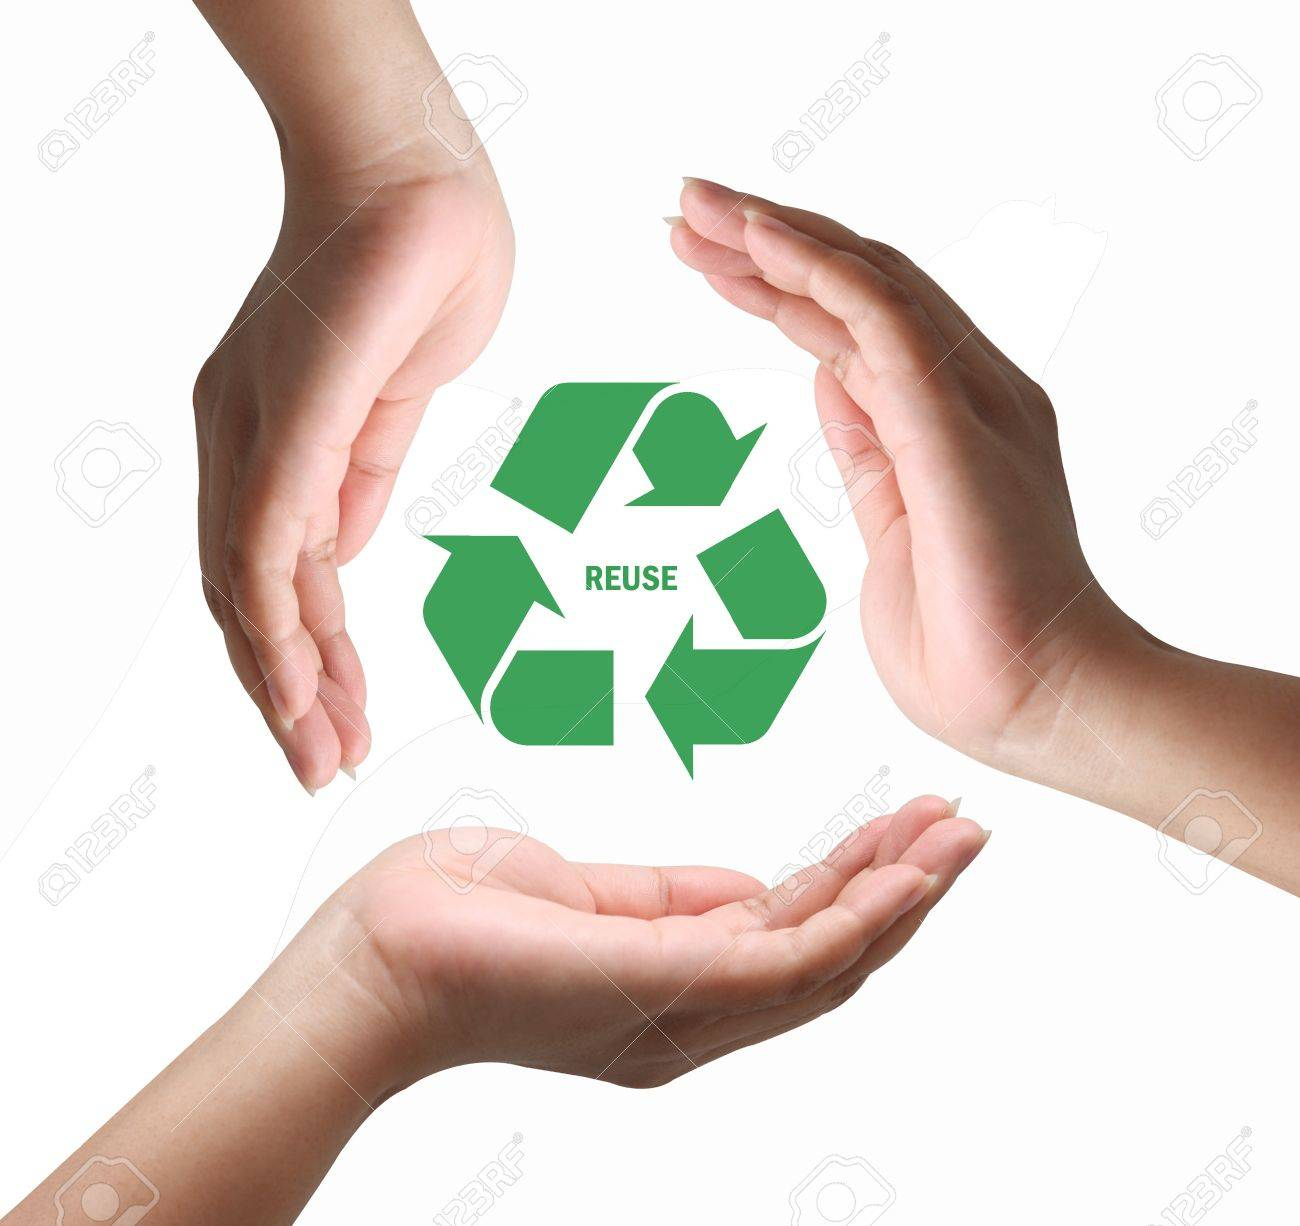 Hand holding recycling symbolhand hold recycle sign stock photo hand holding recycling symbolhand hold recycle sign stock photo 11637840 biocorpaavc Gallery